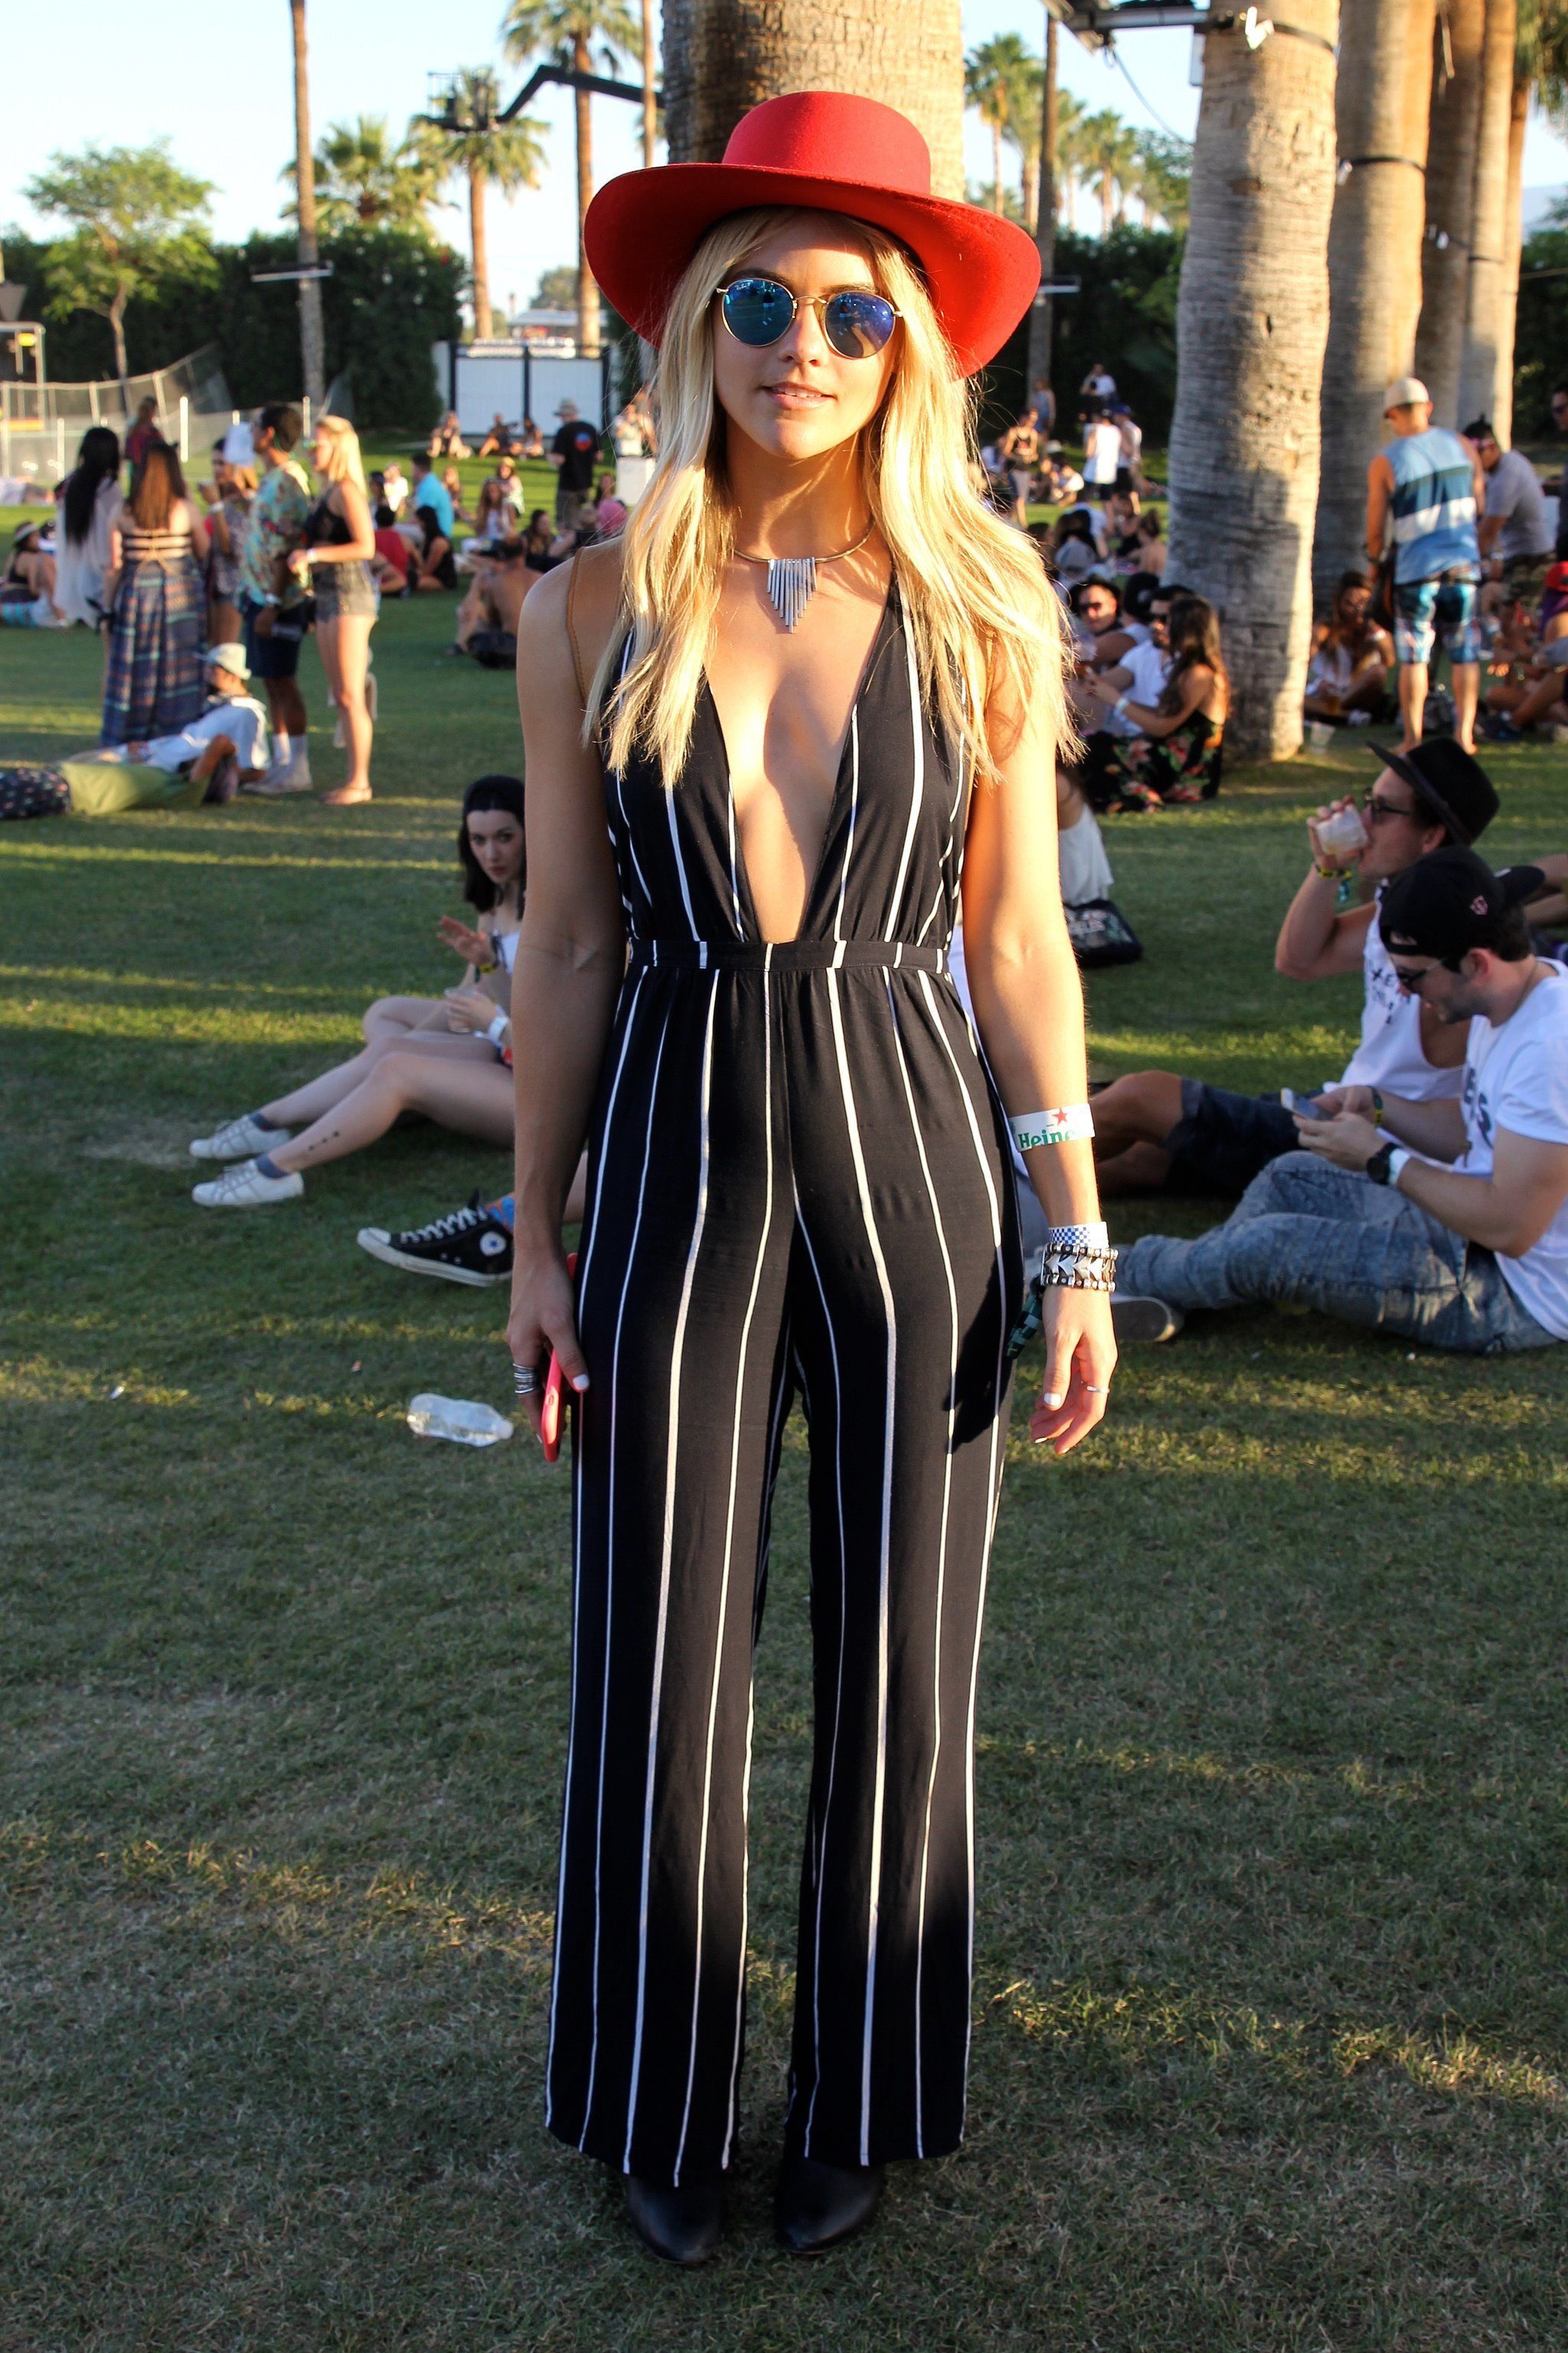 A Striped Shopbop Romper With A Plunging Neckline Stood Out On Its Own But This Outfit Really ...